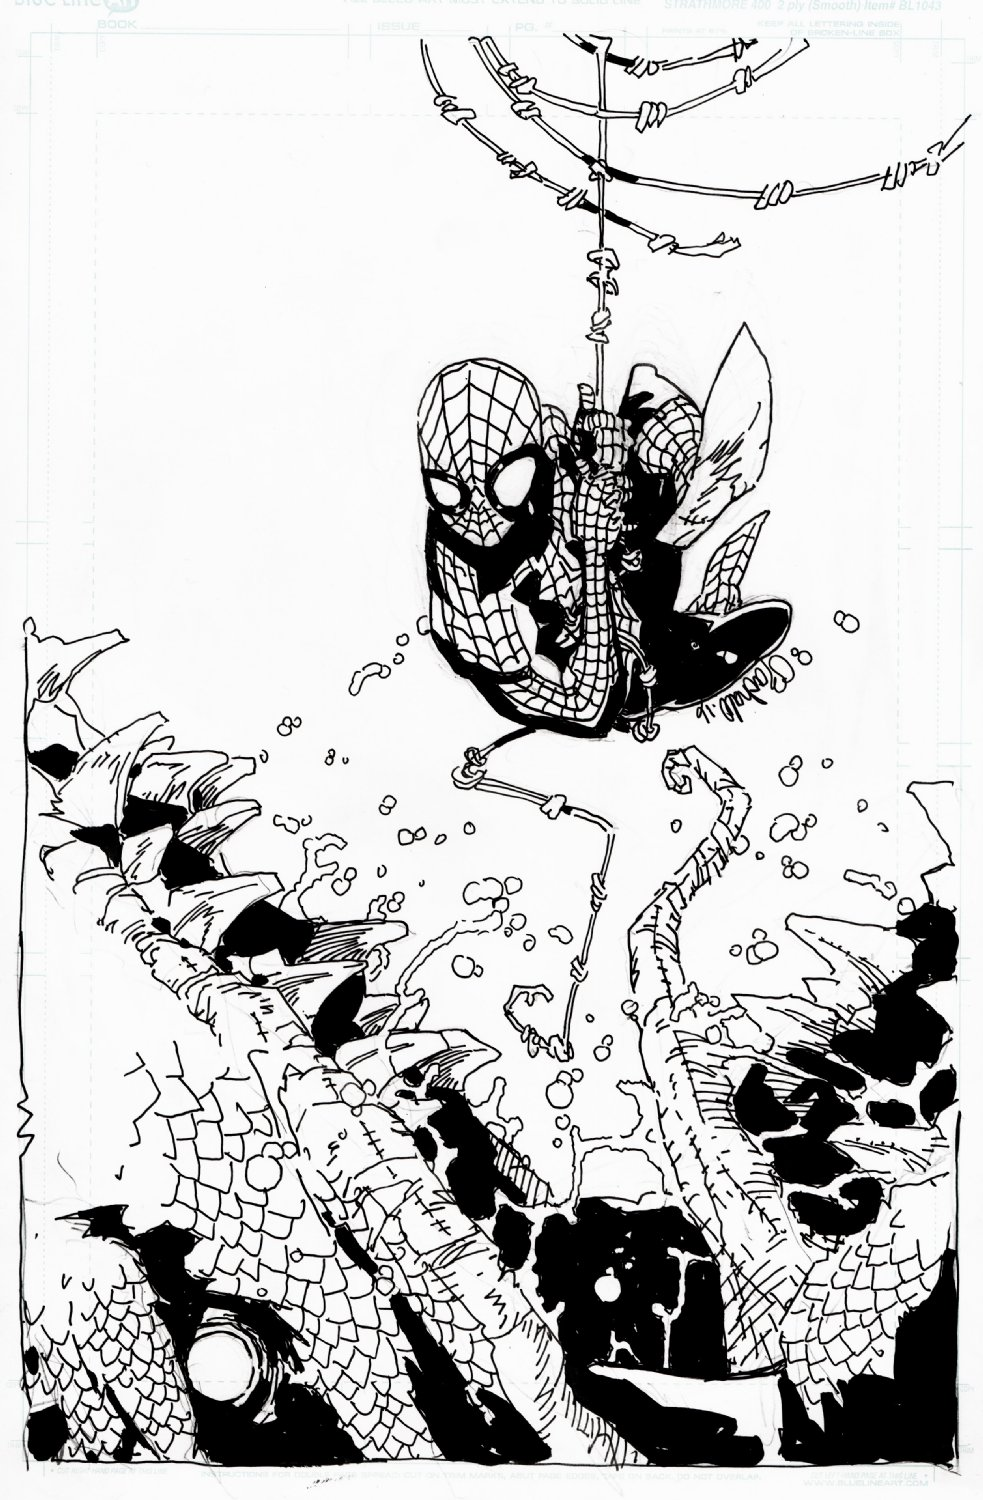 Spider-Man vs. The Lizard Pinup (2016)